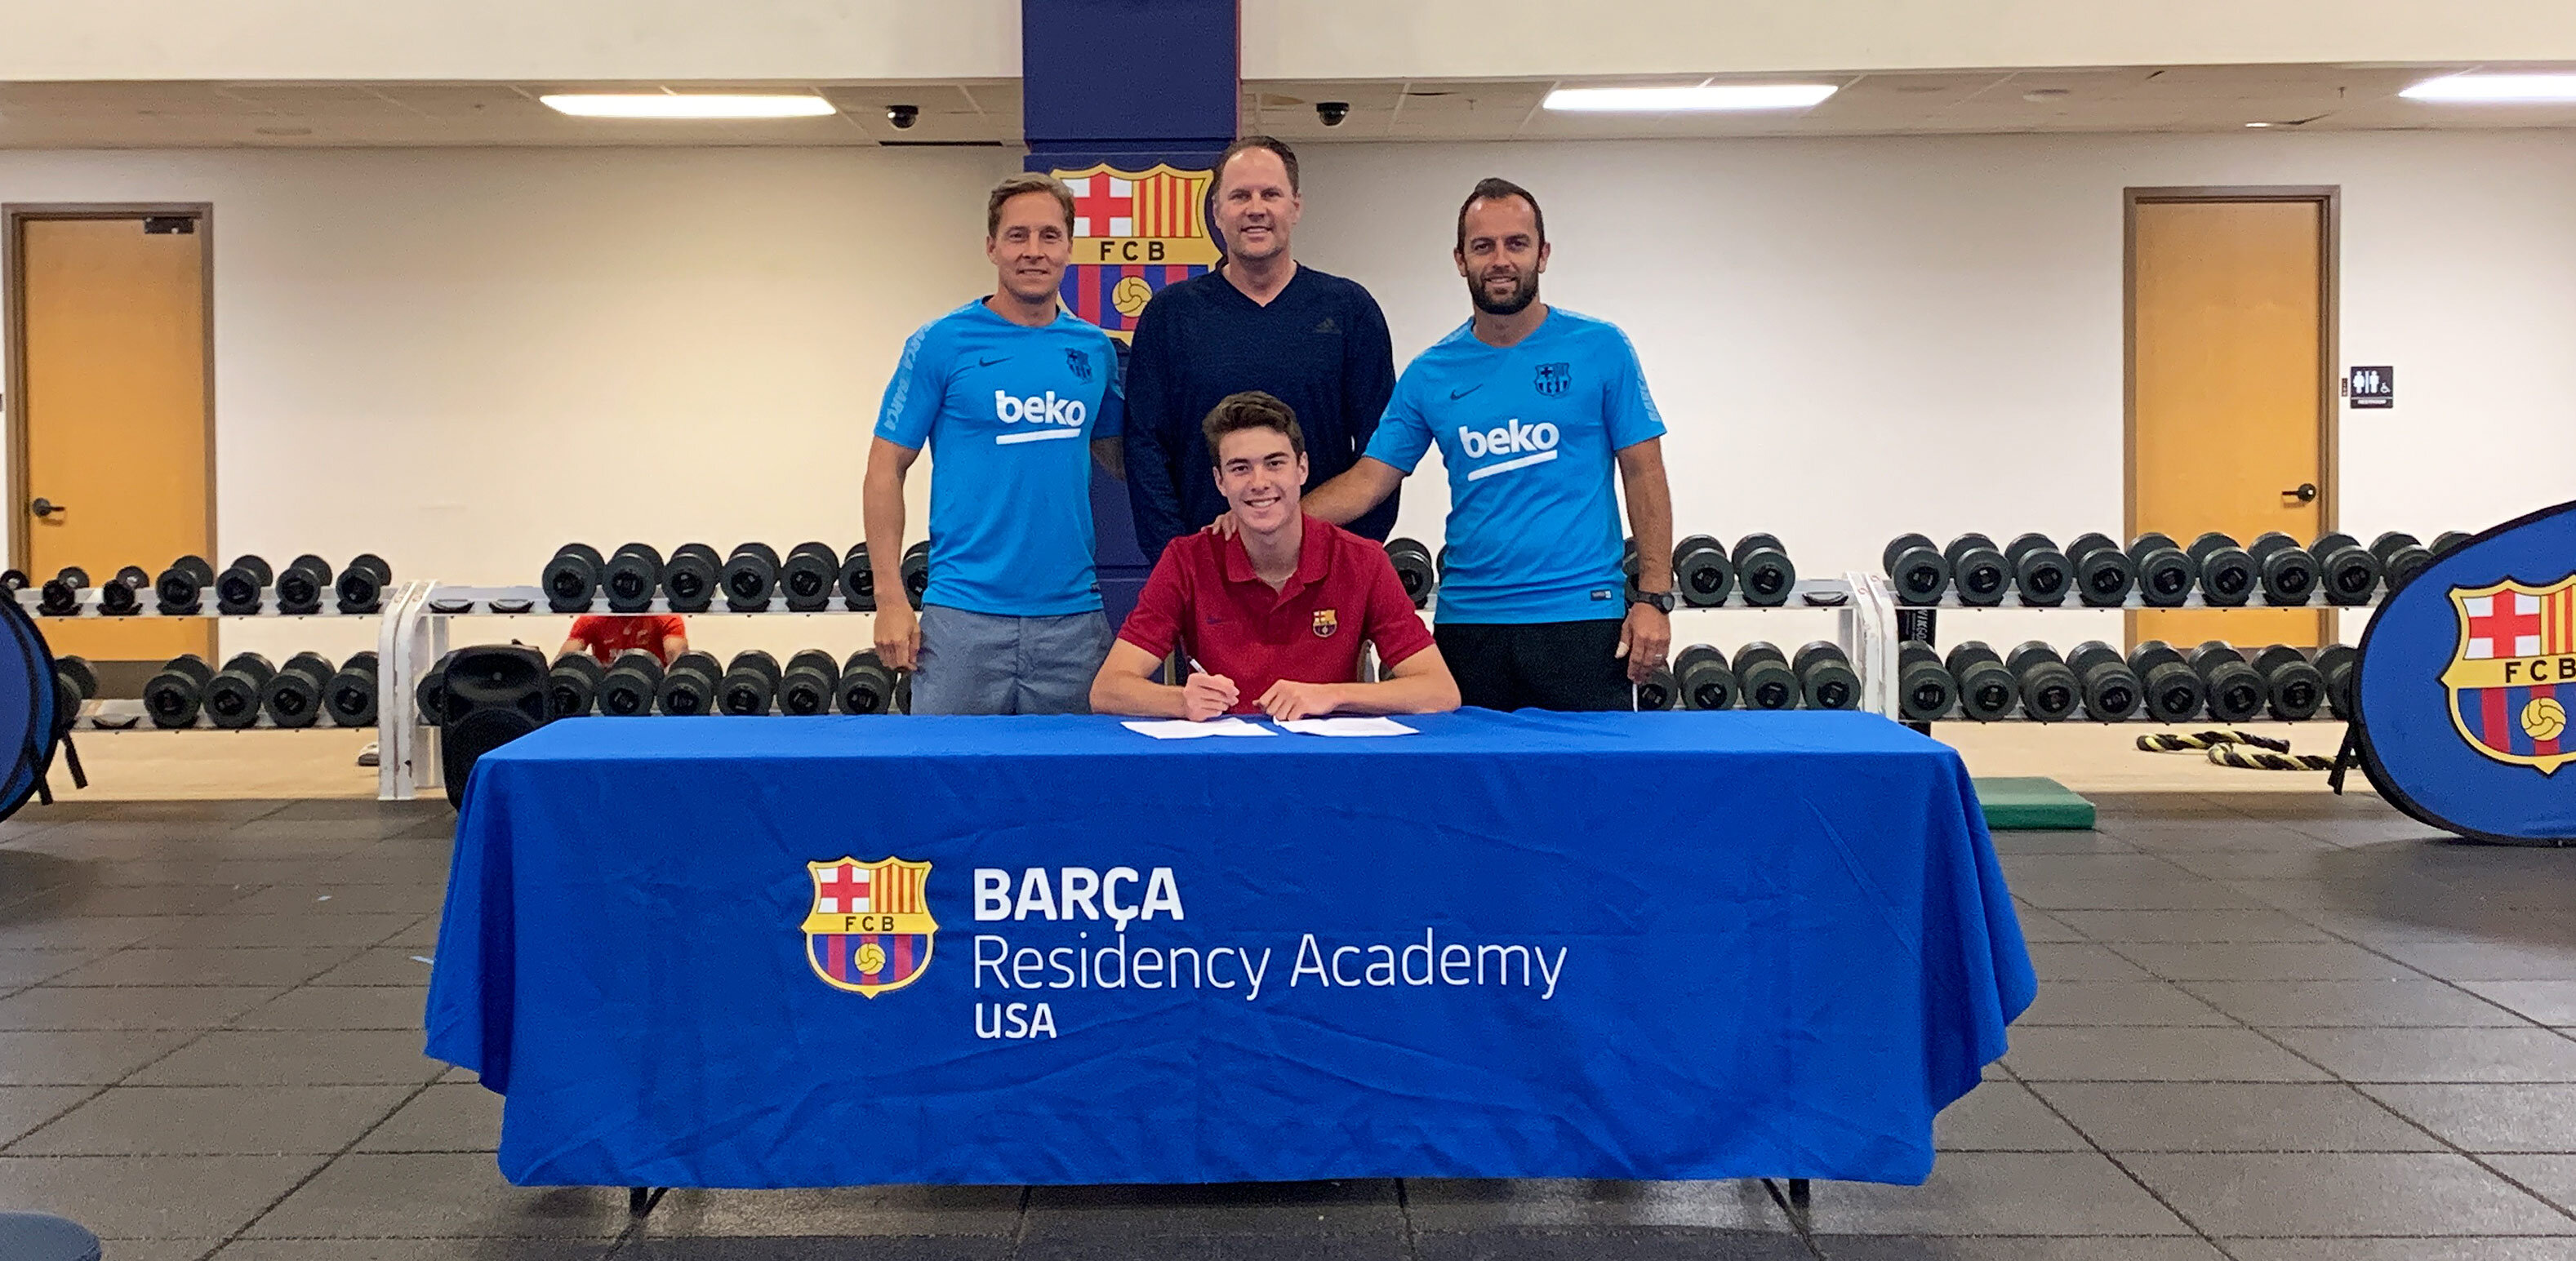 Barca Residency Academy's Matthew Hoppe signing his first professional contract with Matthew Hoppe. (left to right) Miha Kline, Tom Hoppe, Matthew Hoppe and Sean McCafferty.